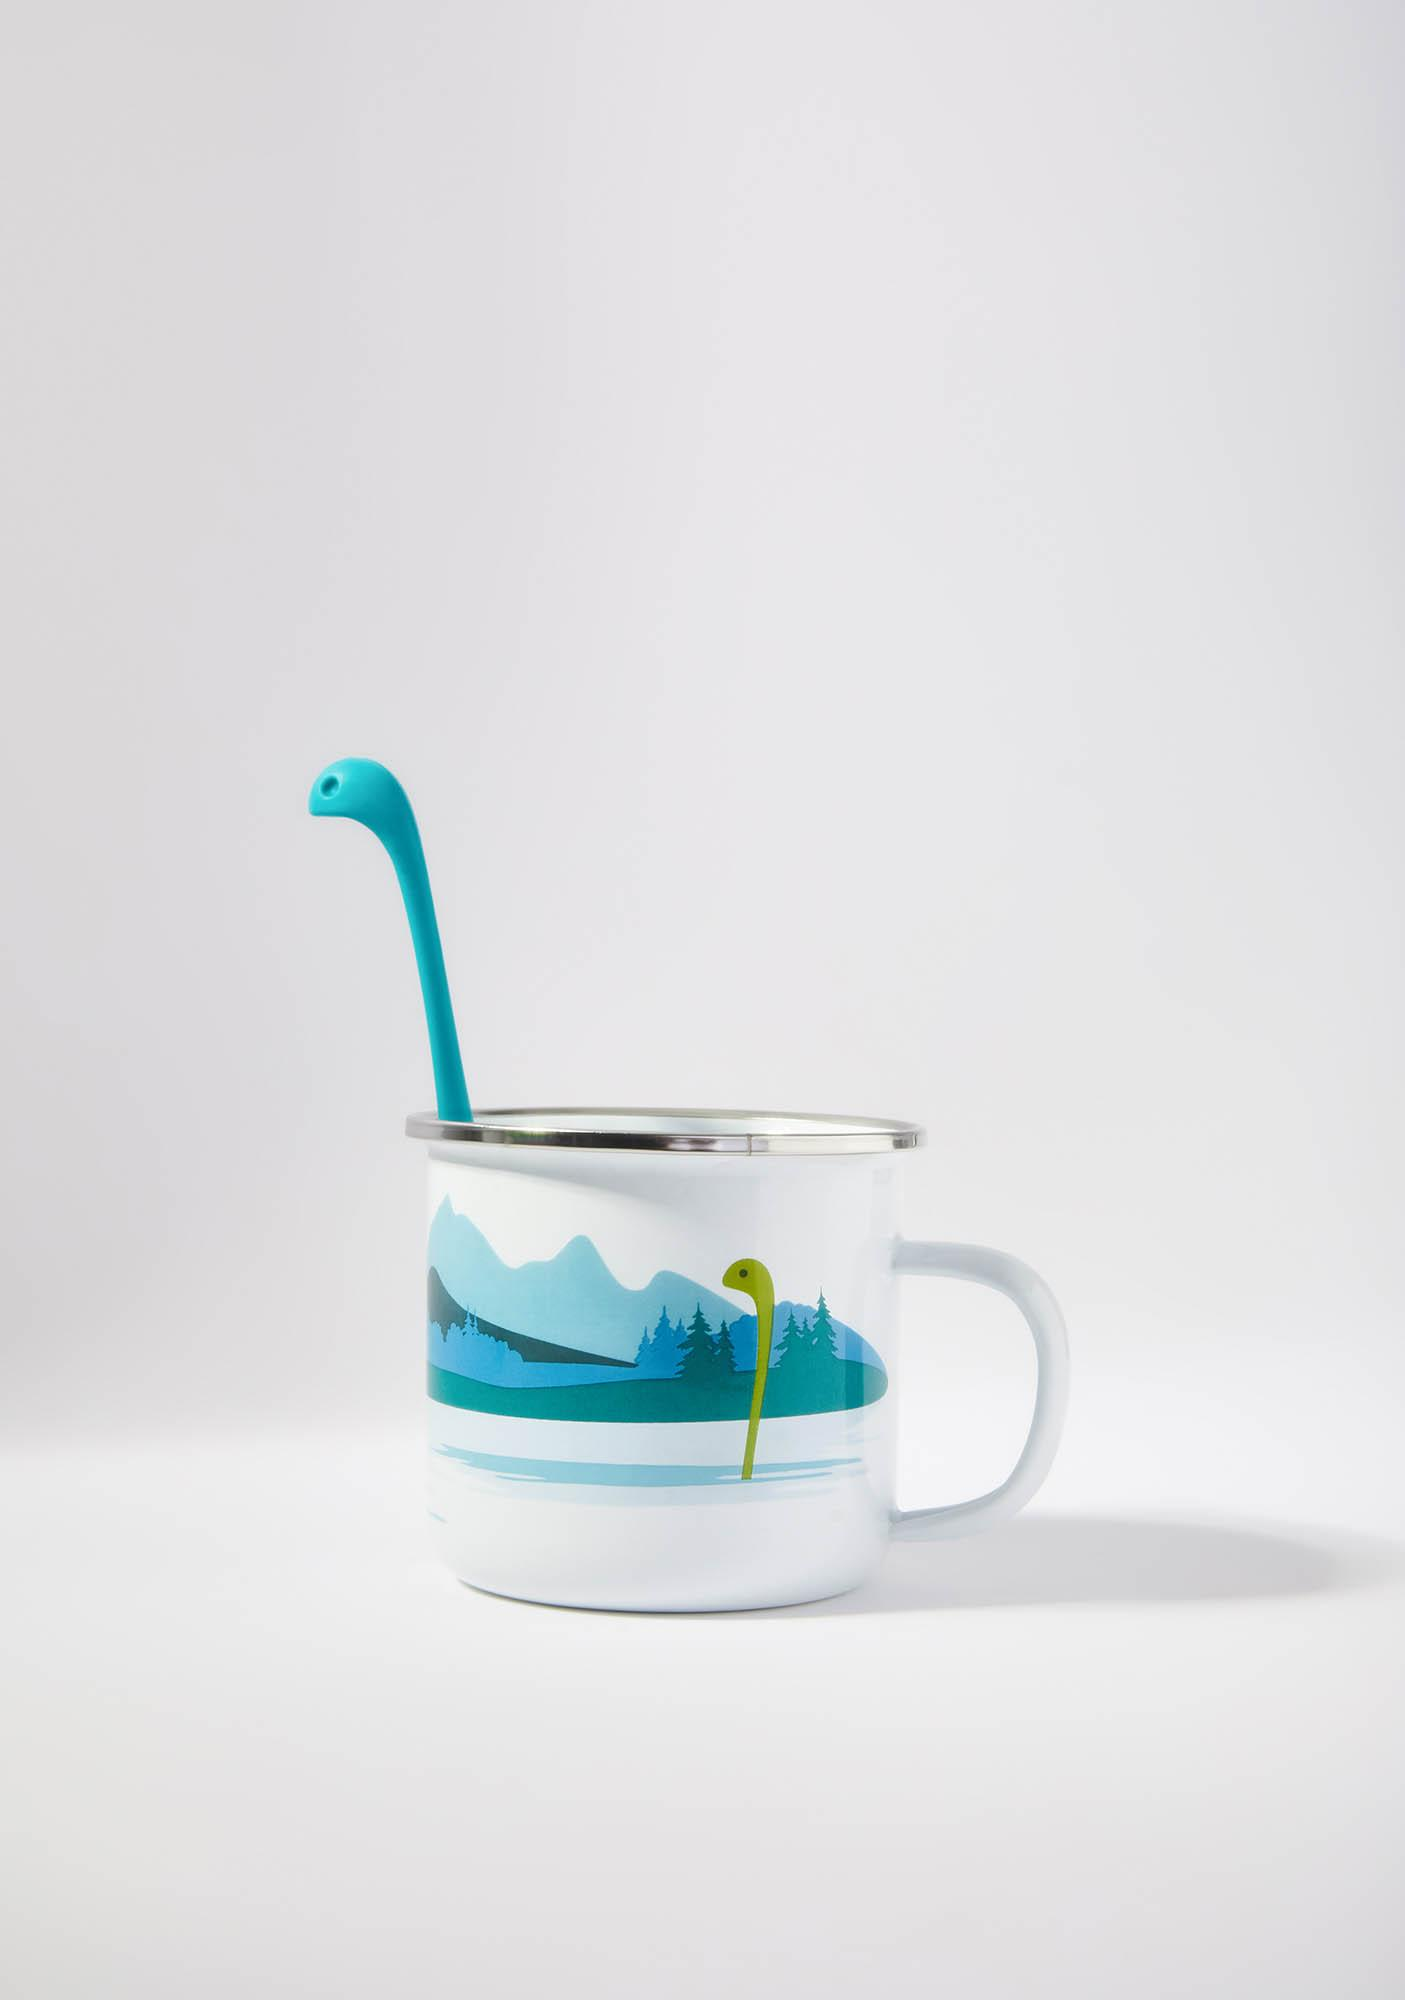 OTOTO Cup Of Nessie Tea Infuser And Cup Set